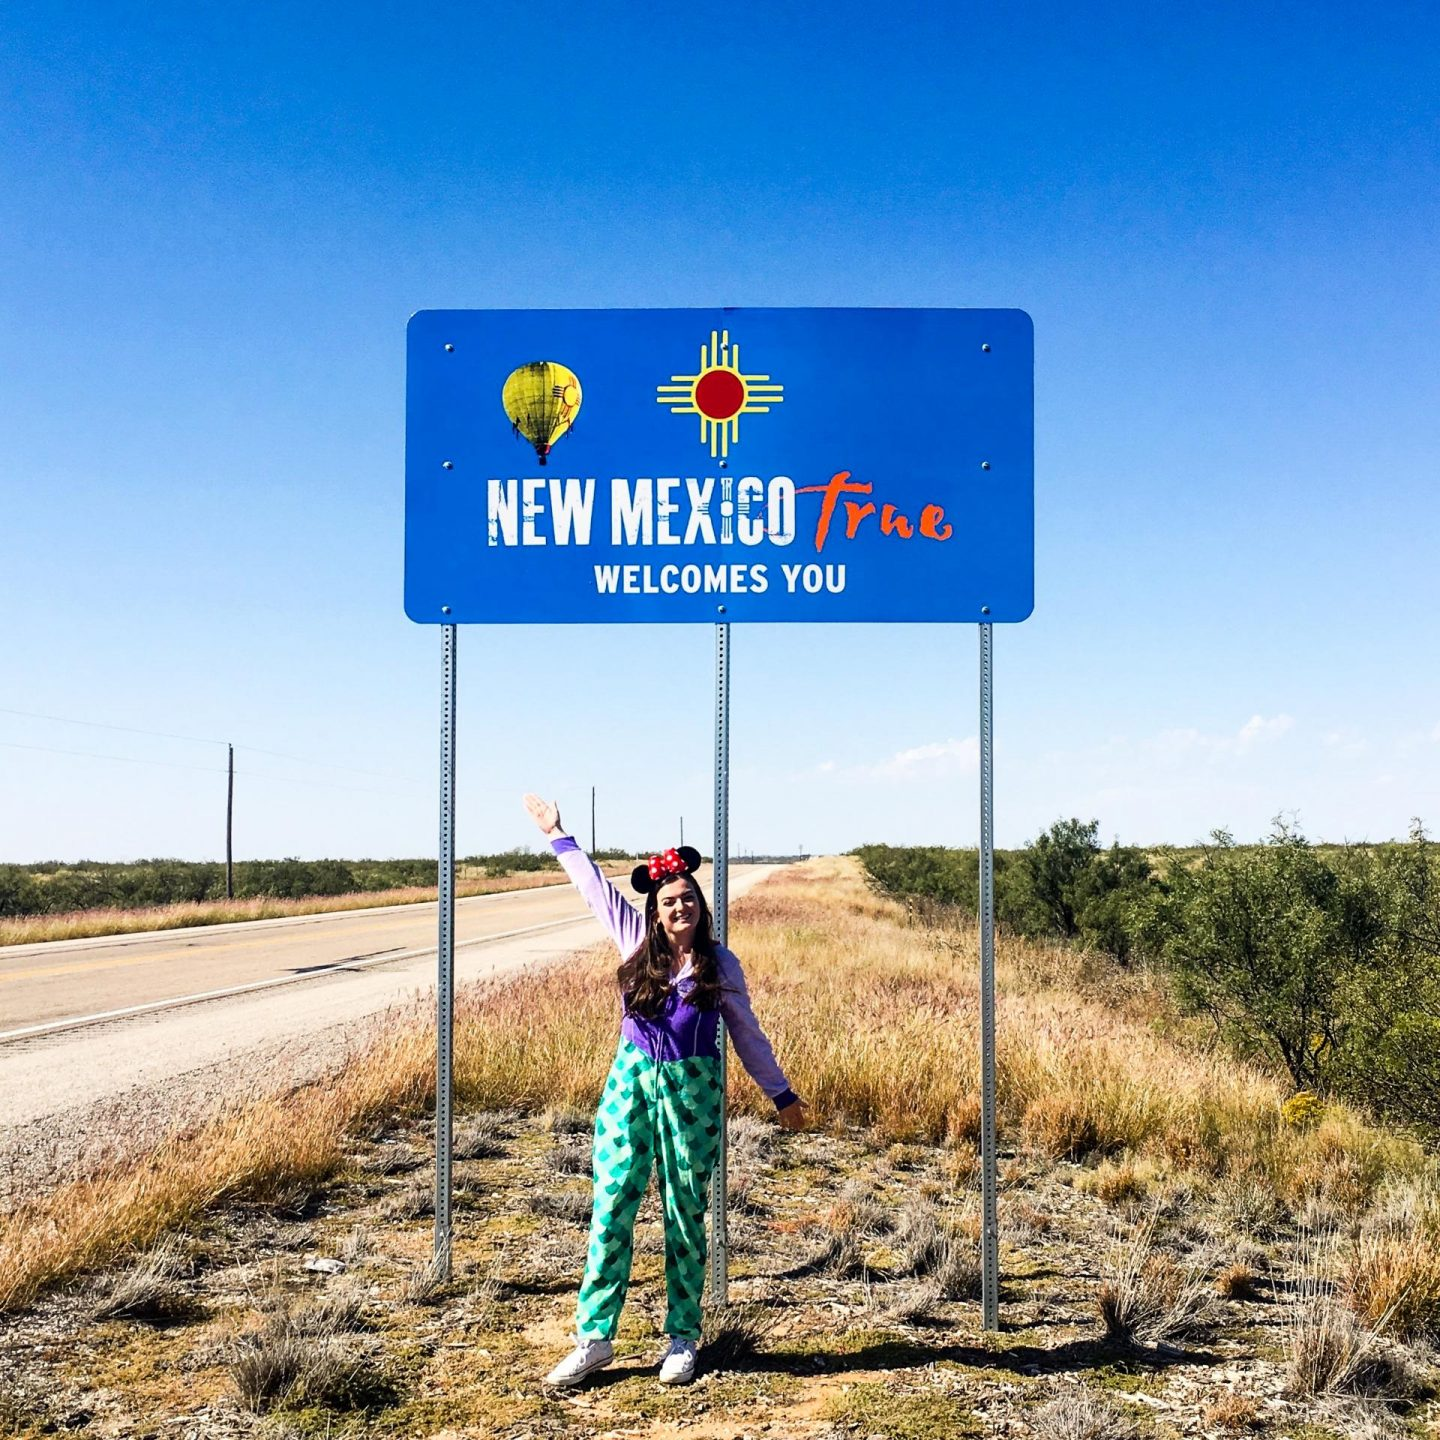 Halloween in Carlsbad Cavern, Roswell & Santa Fe - New Mexico State Line